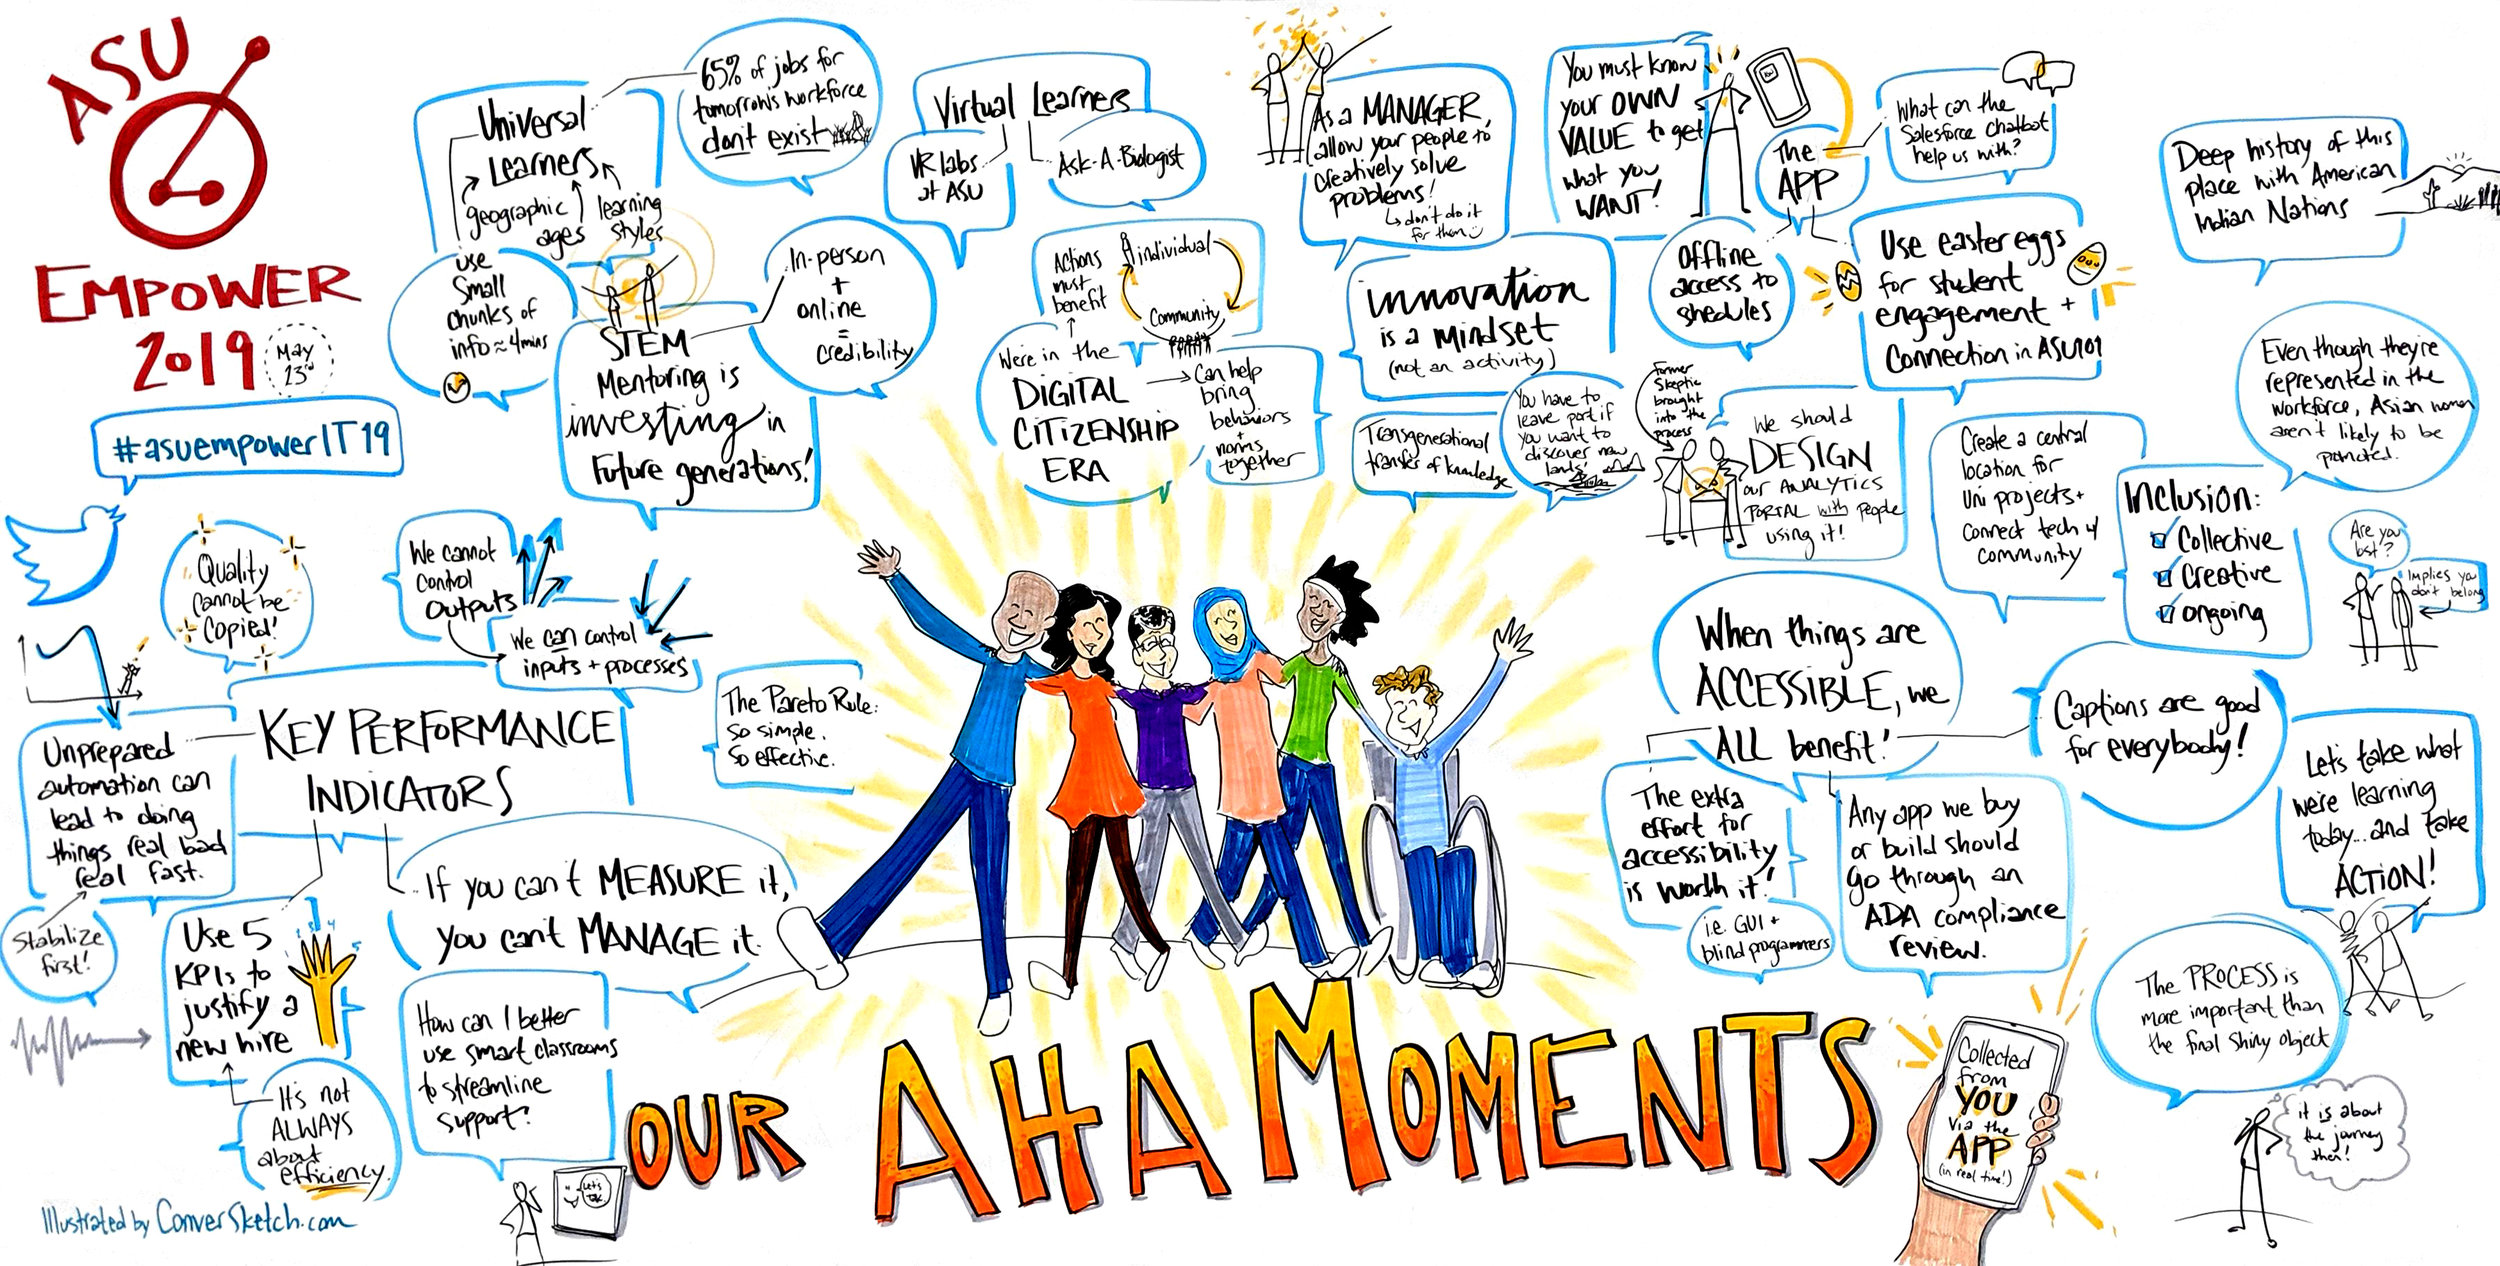 asu-empower-it-2019-aha-moments-summary-graphic-recording-conversketch